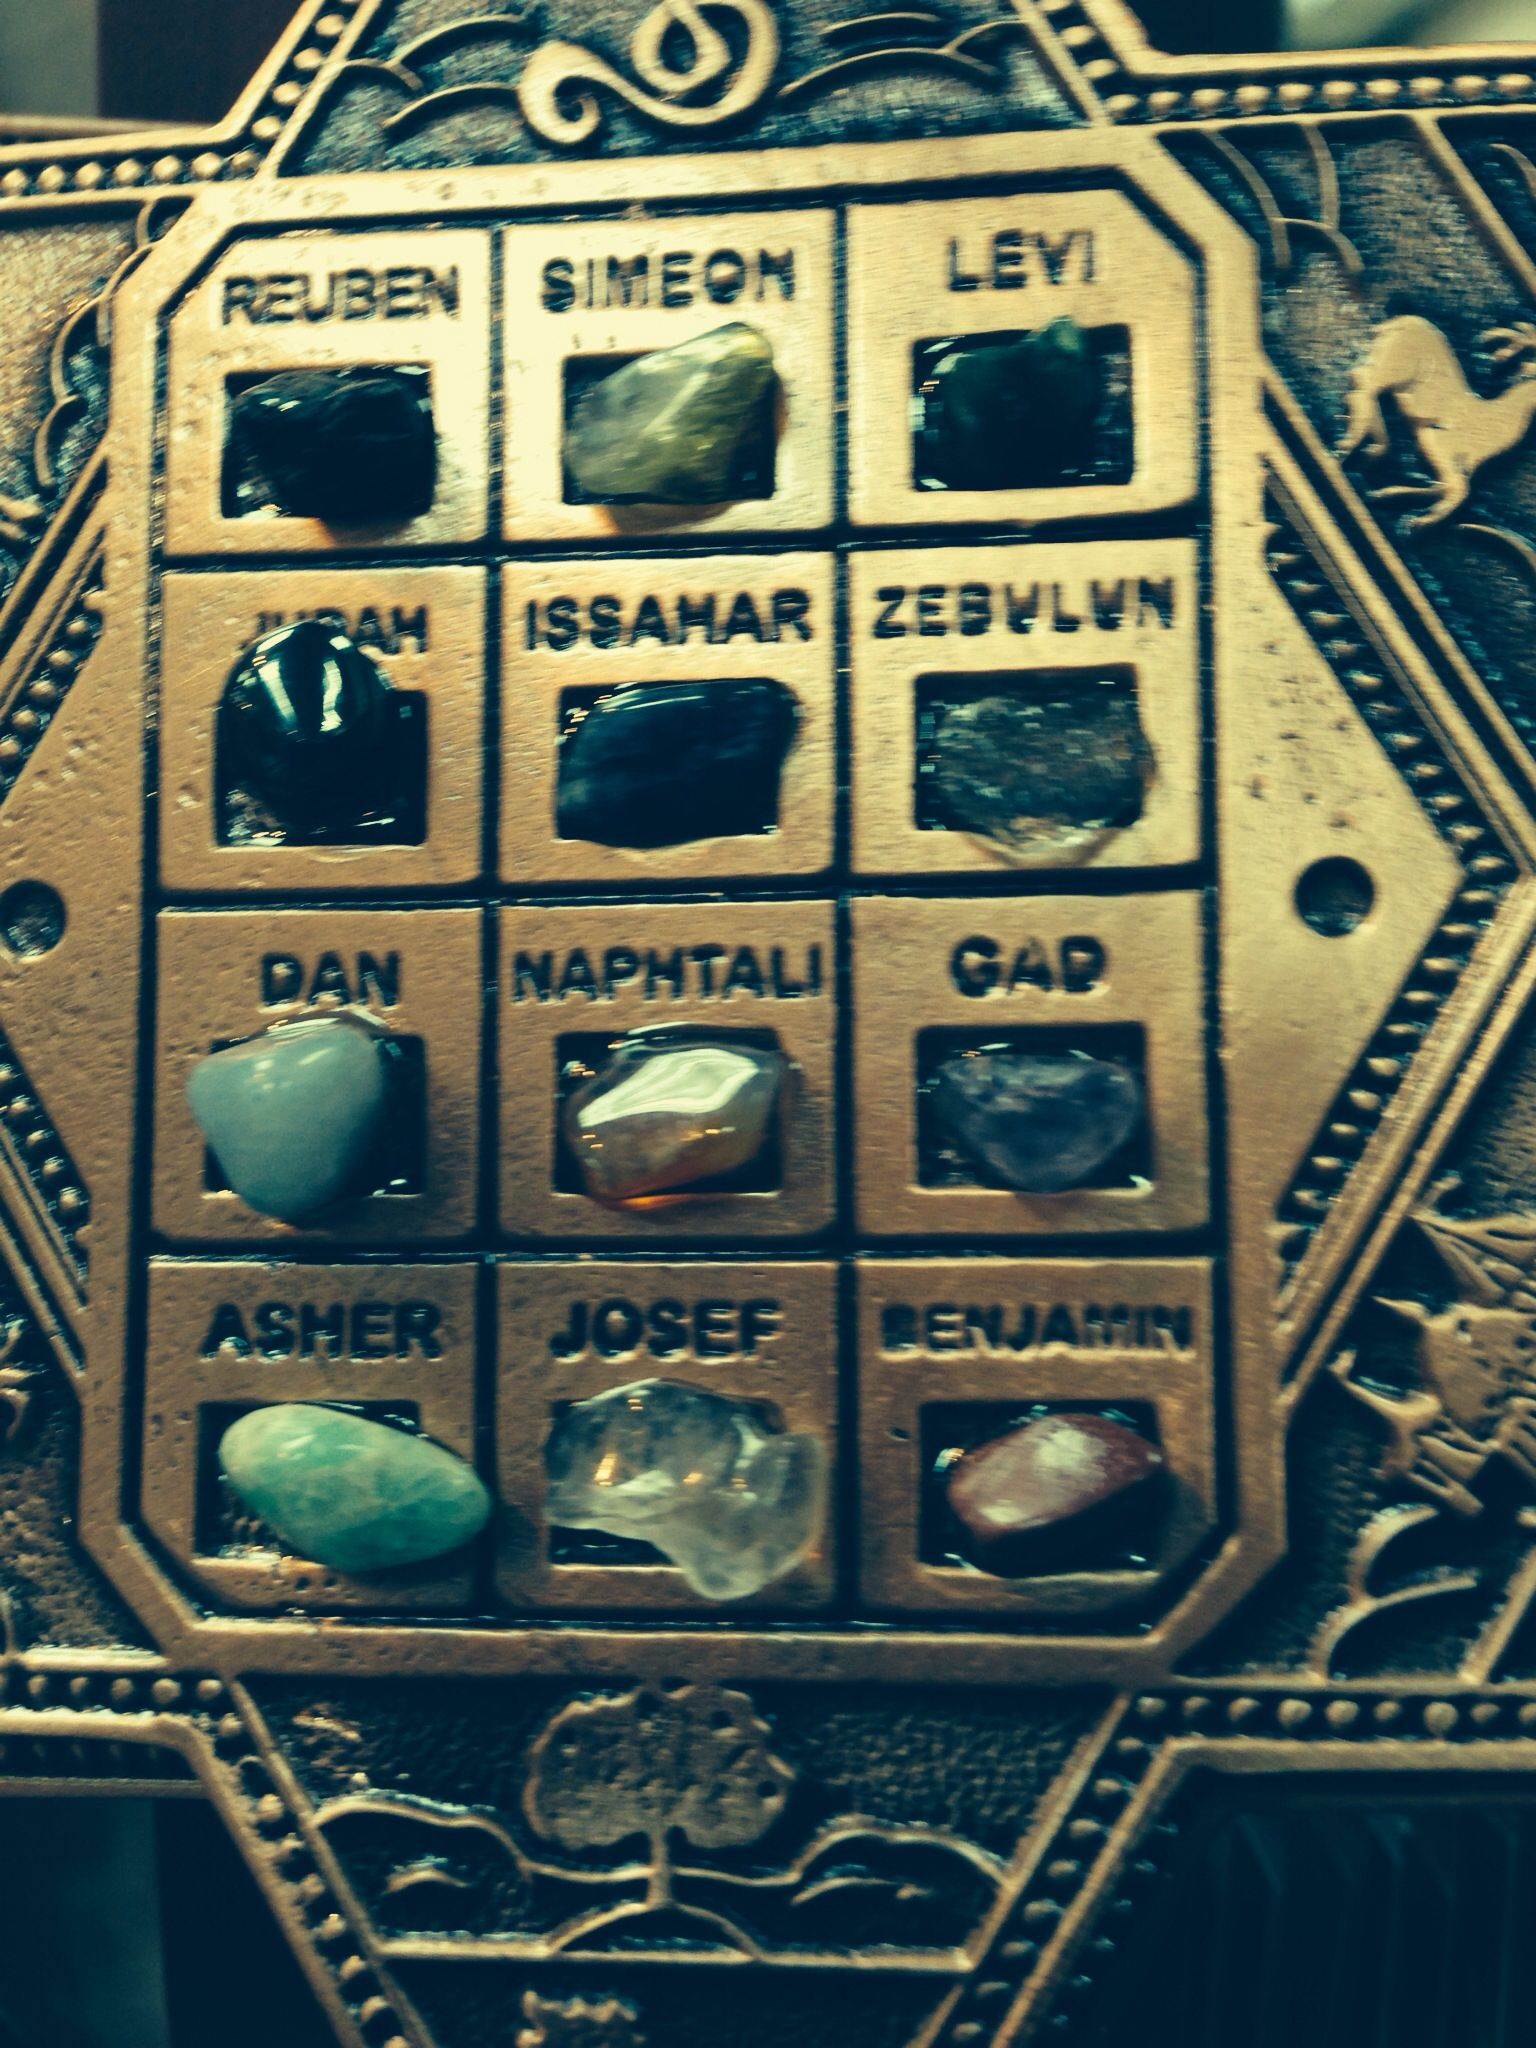 12 Tribes Of Israel With Images